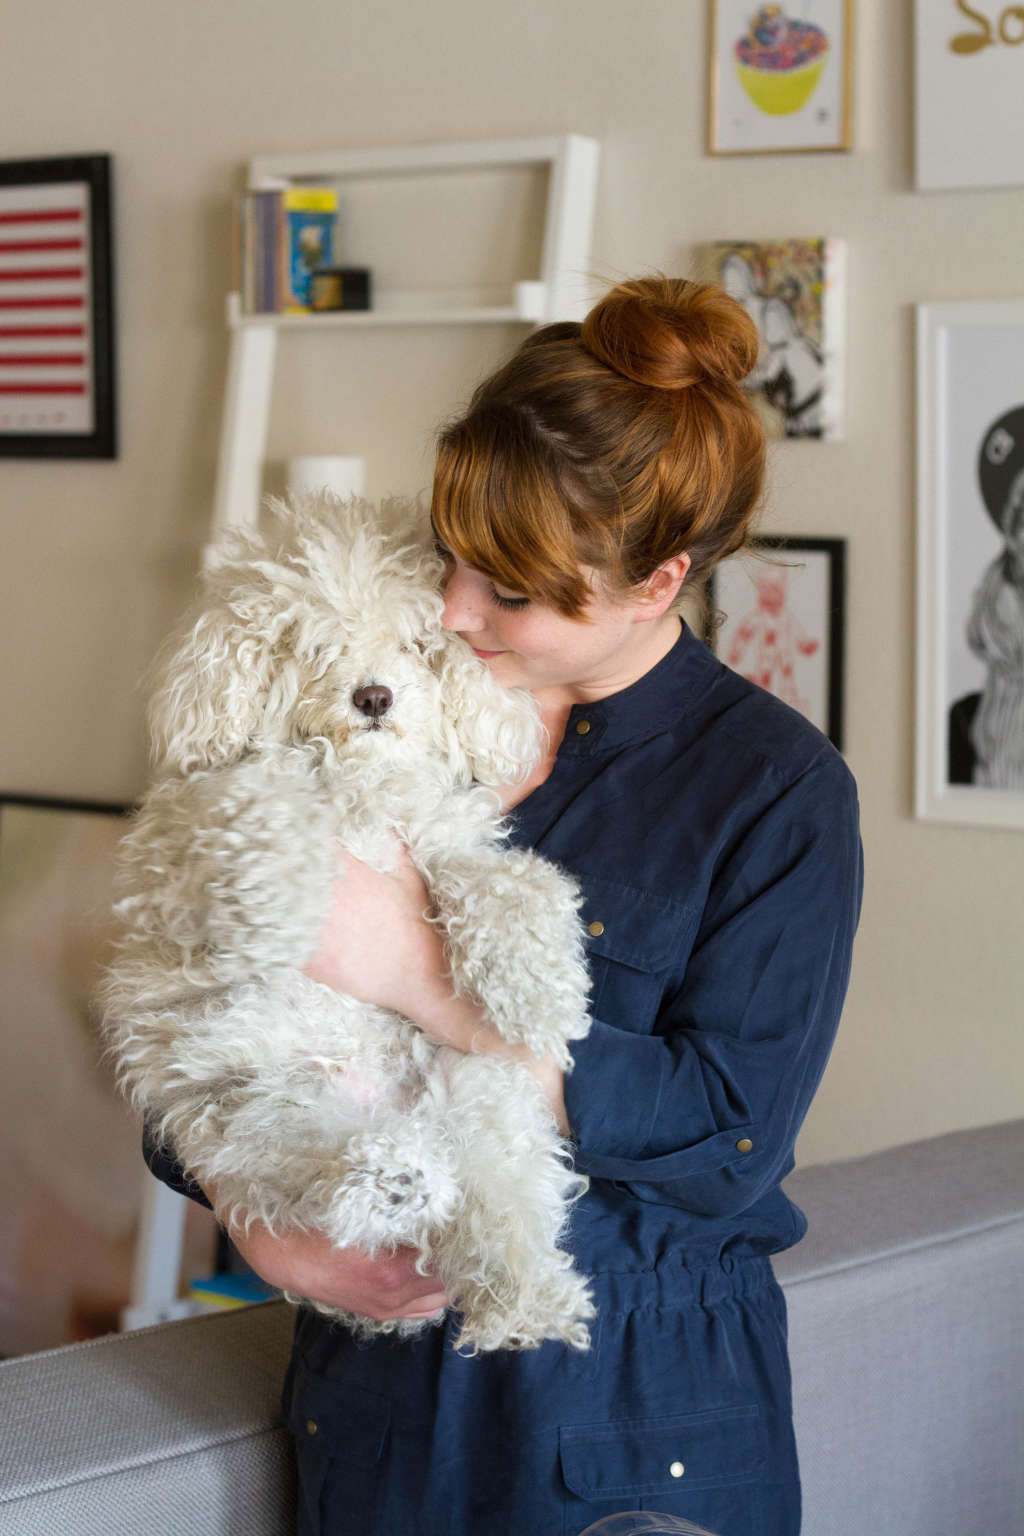 3 Lessons Your Dog Can Teach You About Happiness at Home